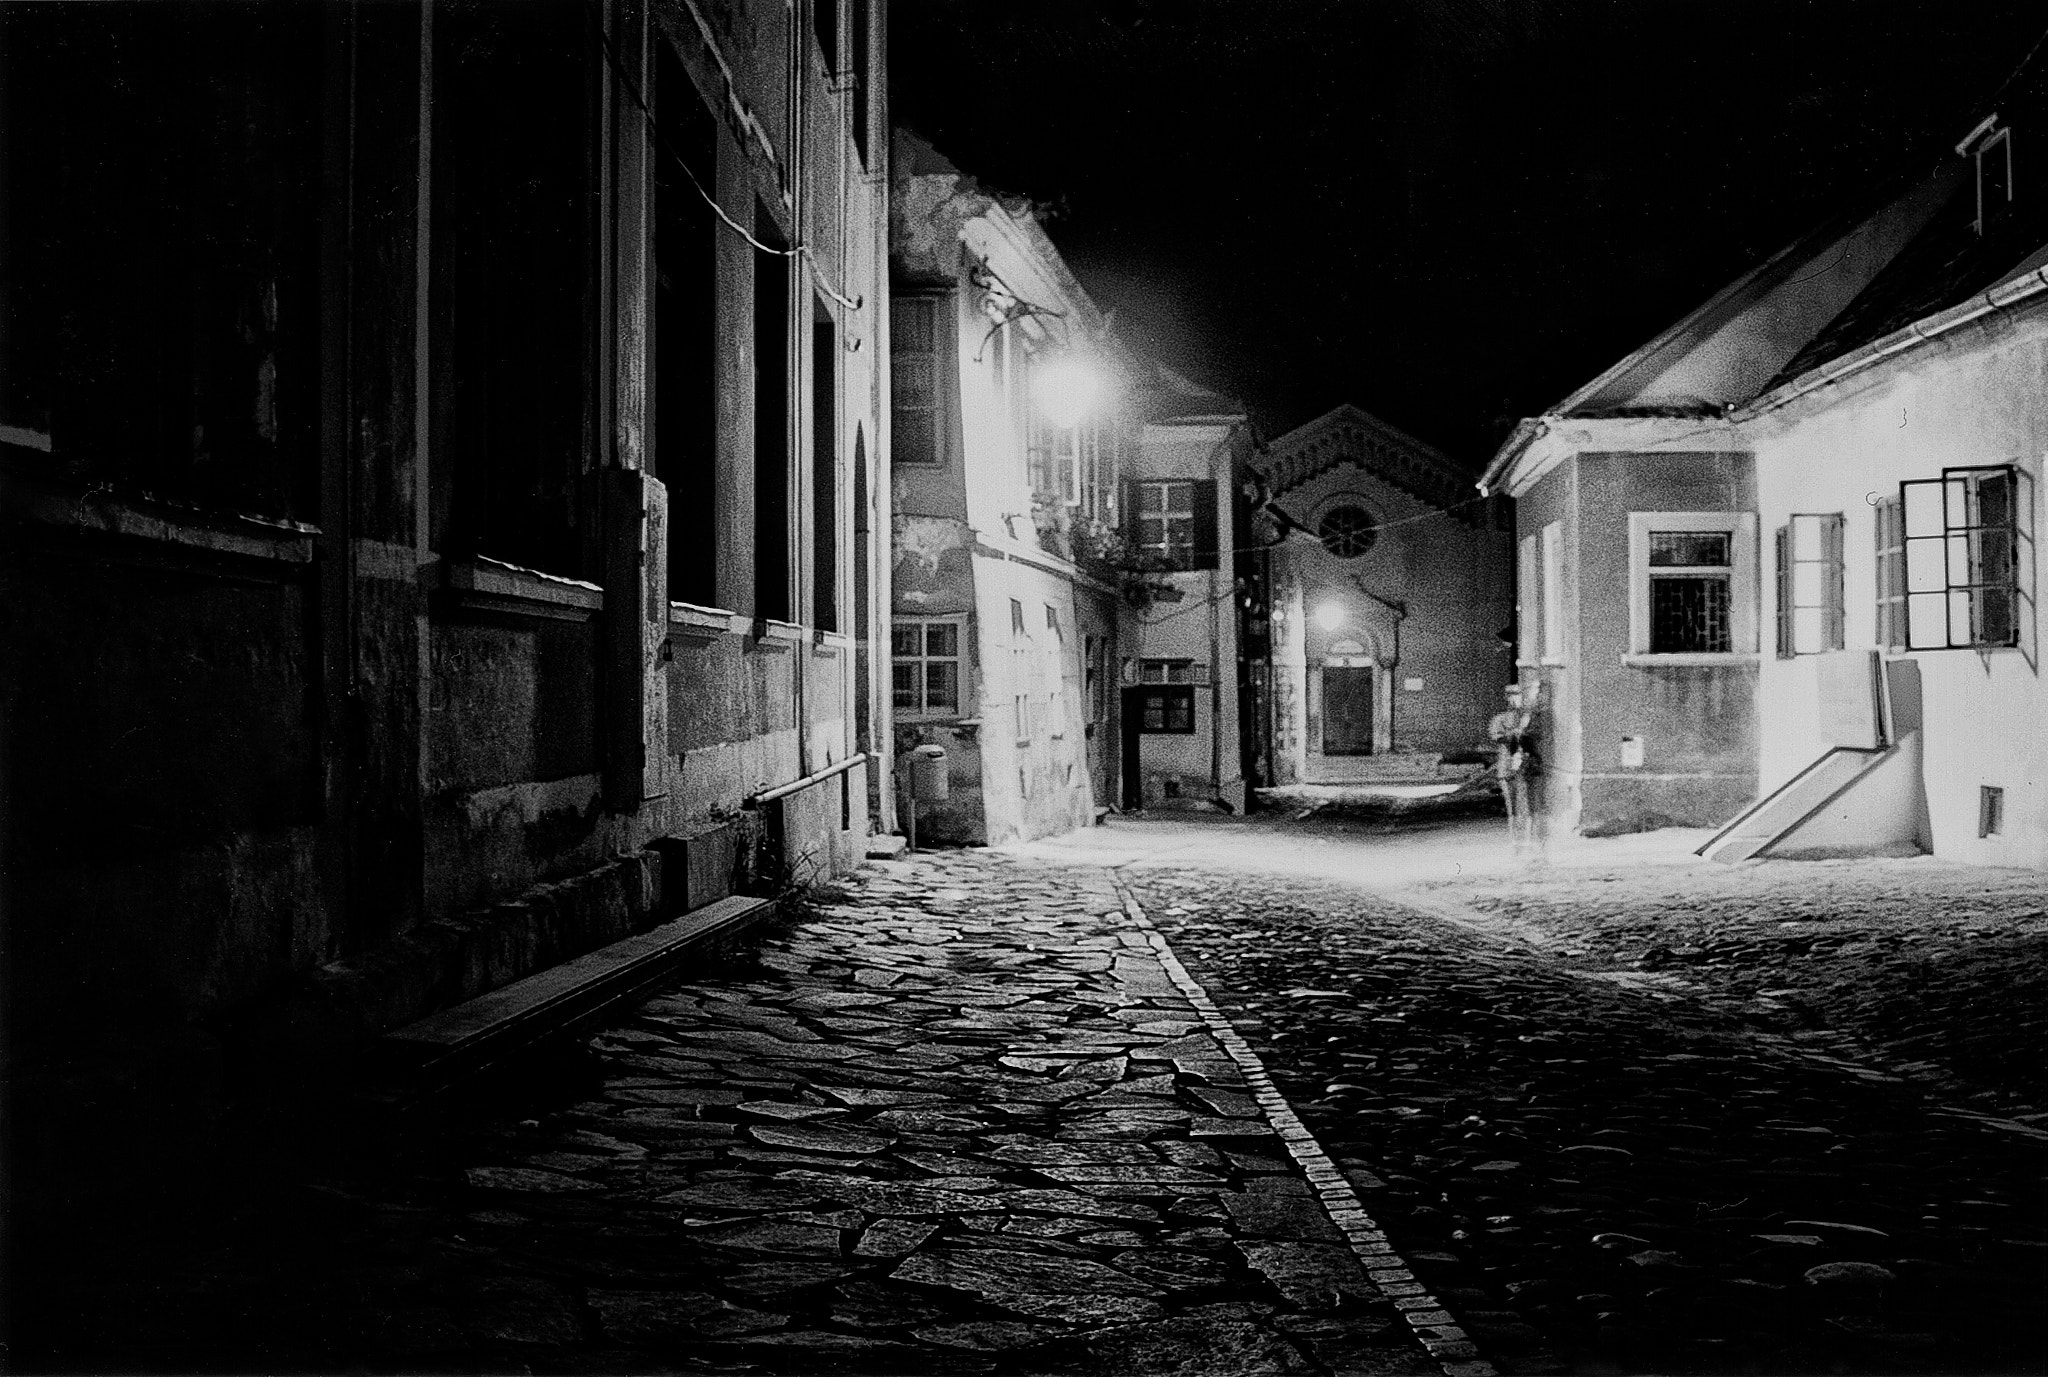 Photograph Phantom in the old city (Sighisoara 2001) by Mihai Ilie on 500px